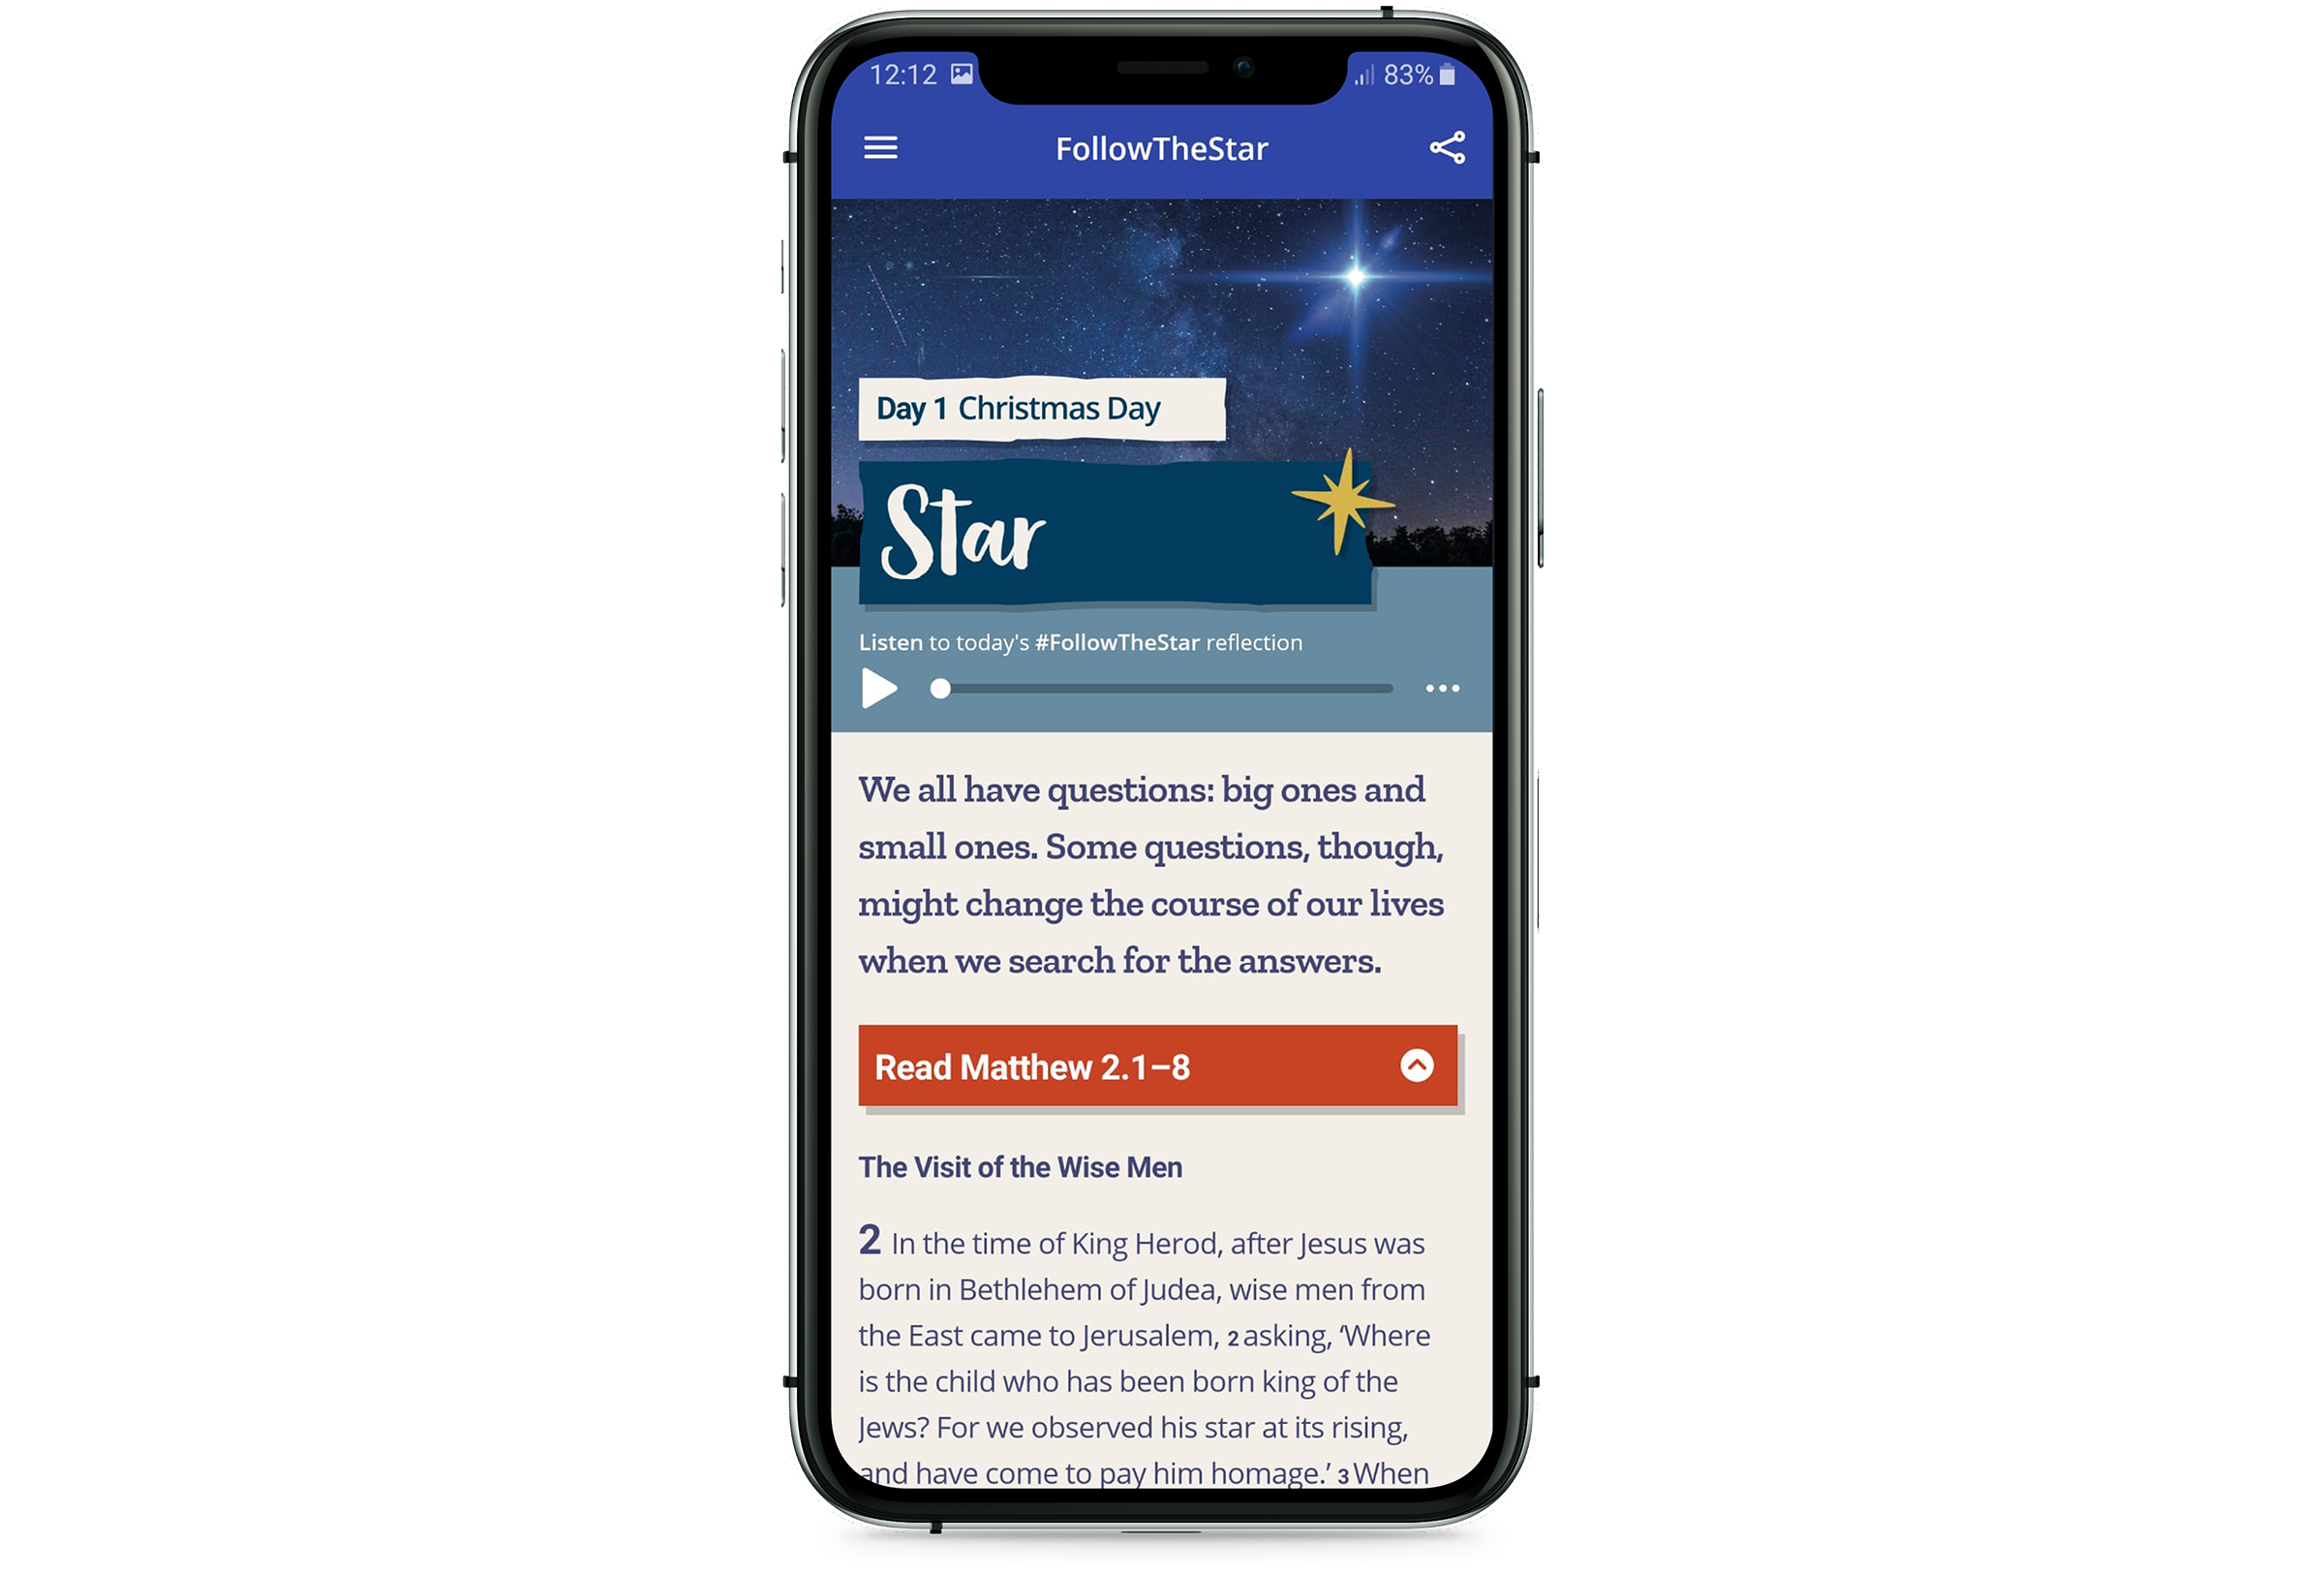 A mock up of the 2019 #FollowTheStar app on an iPhone.